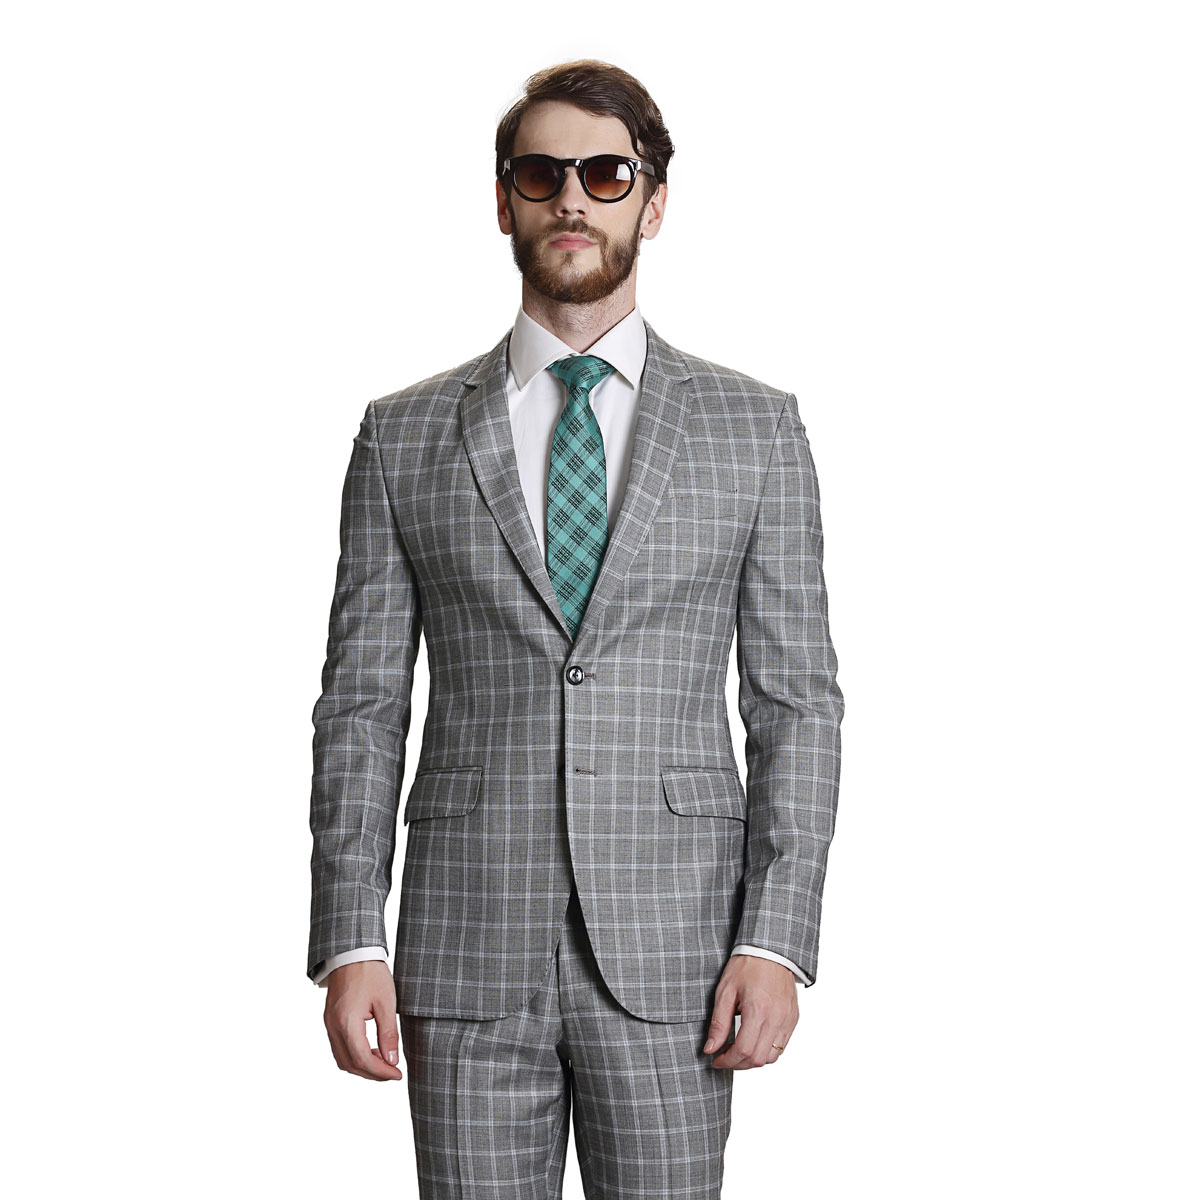 FEEL GOOD GREY CHECK SUIT - Best Bespoke Suits. Premium Custom ...